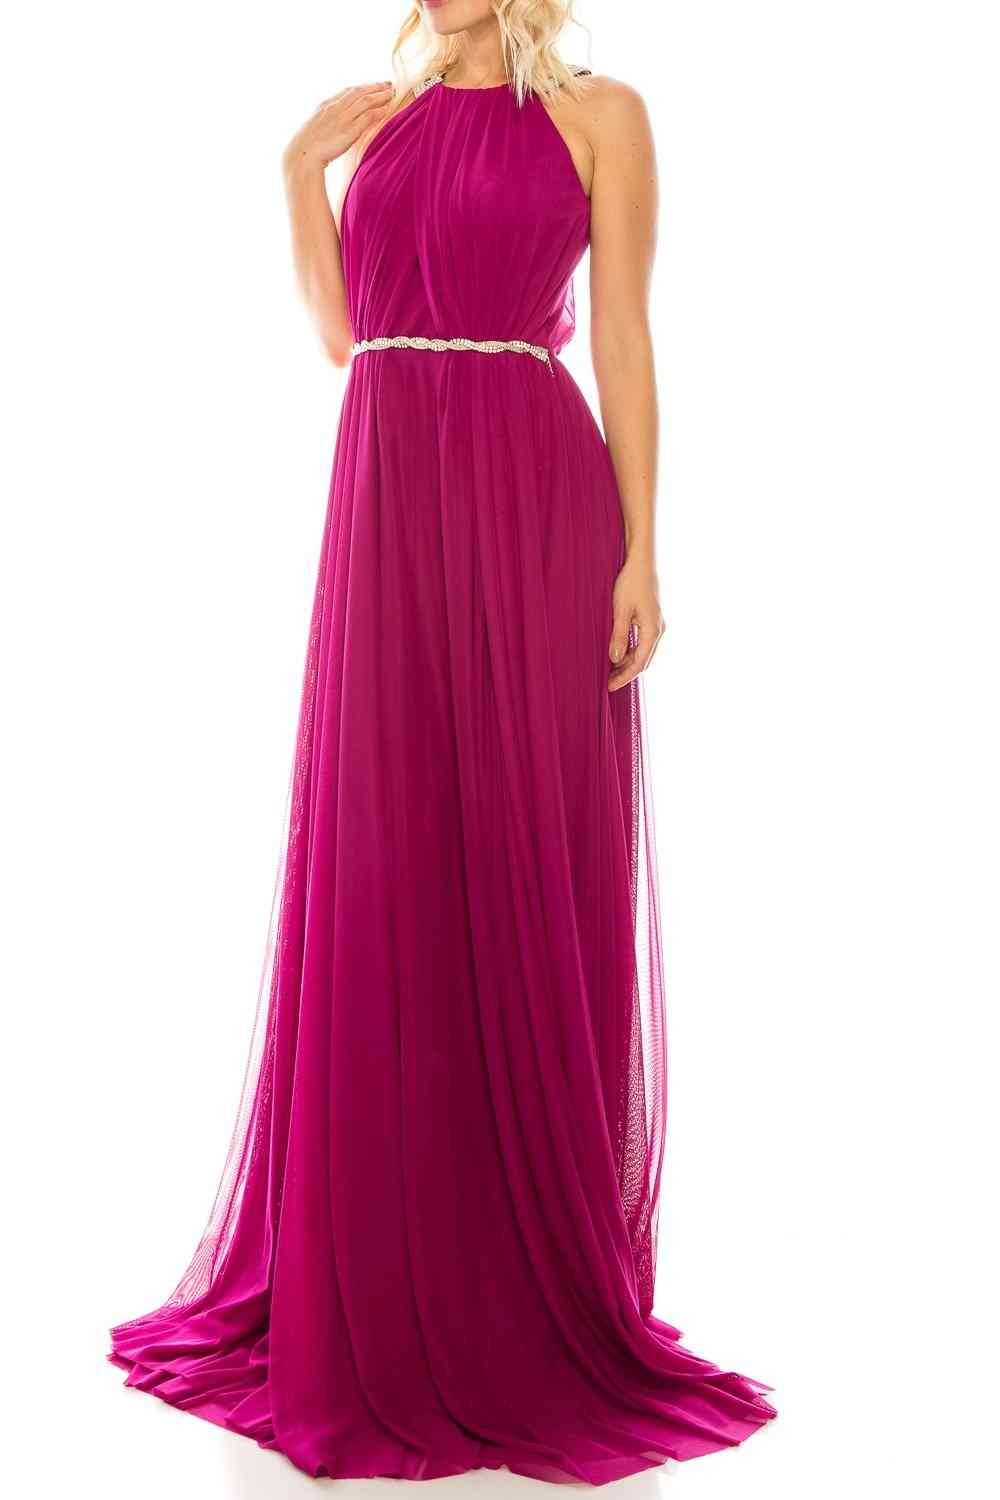 A-line Silhouette Sleeveless, Halter Evening Gown